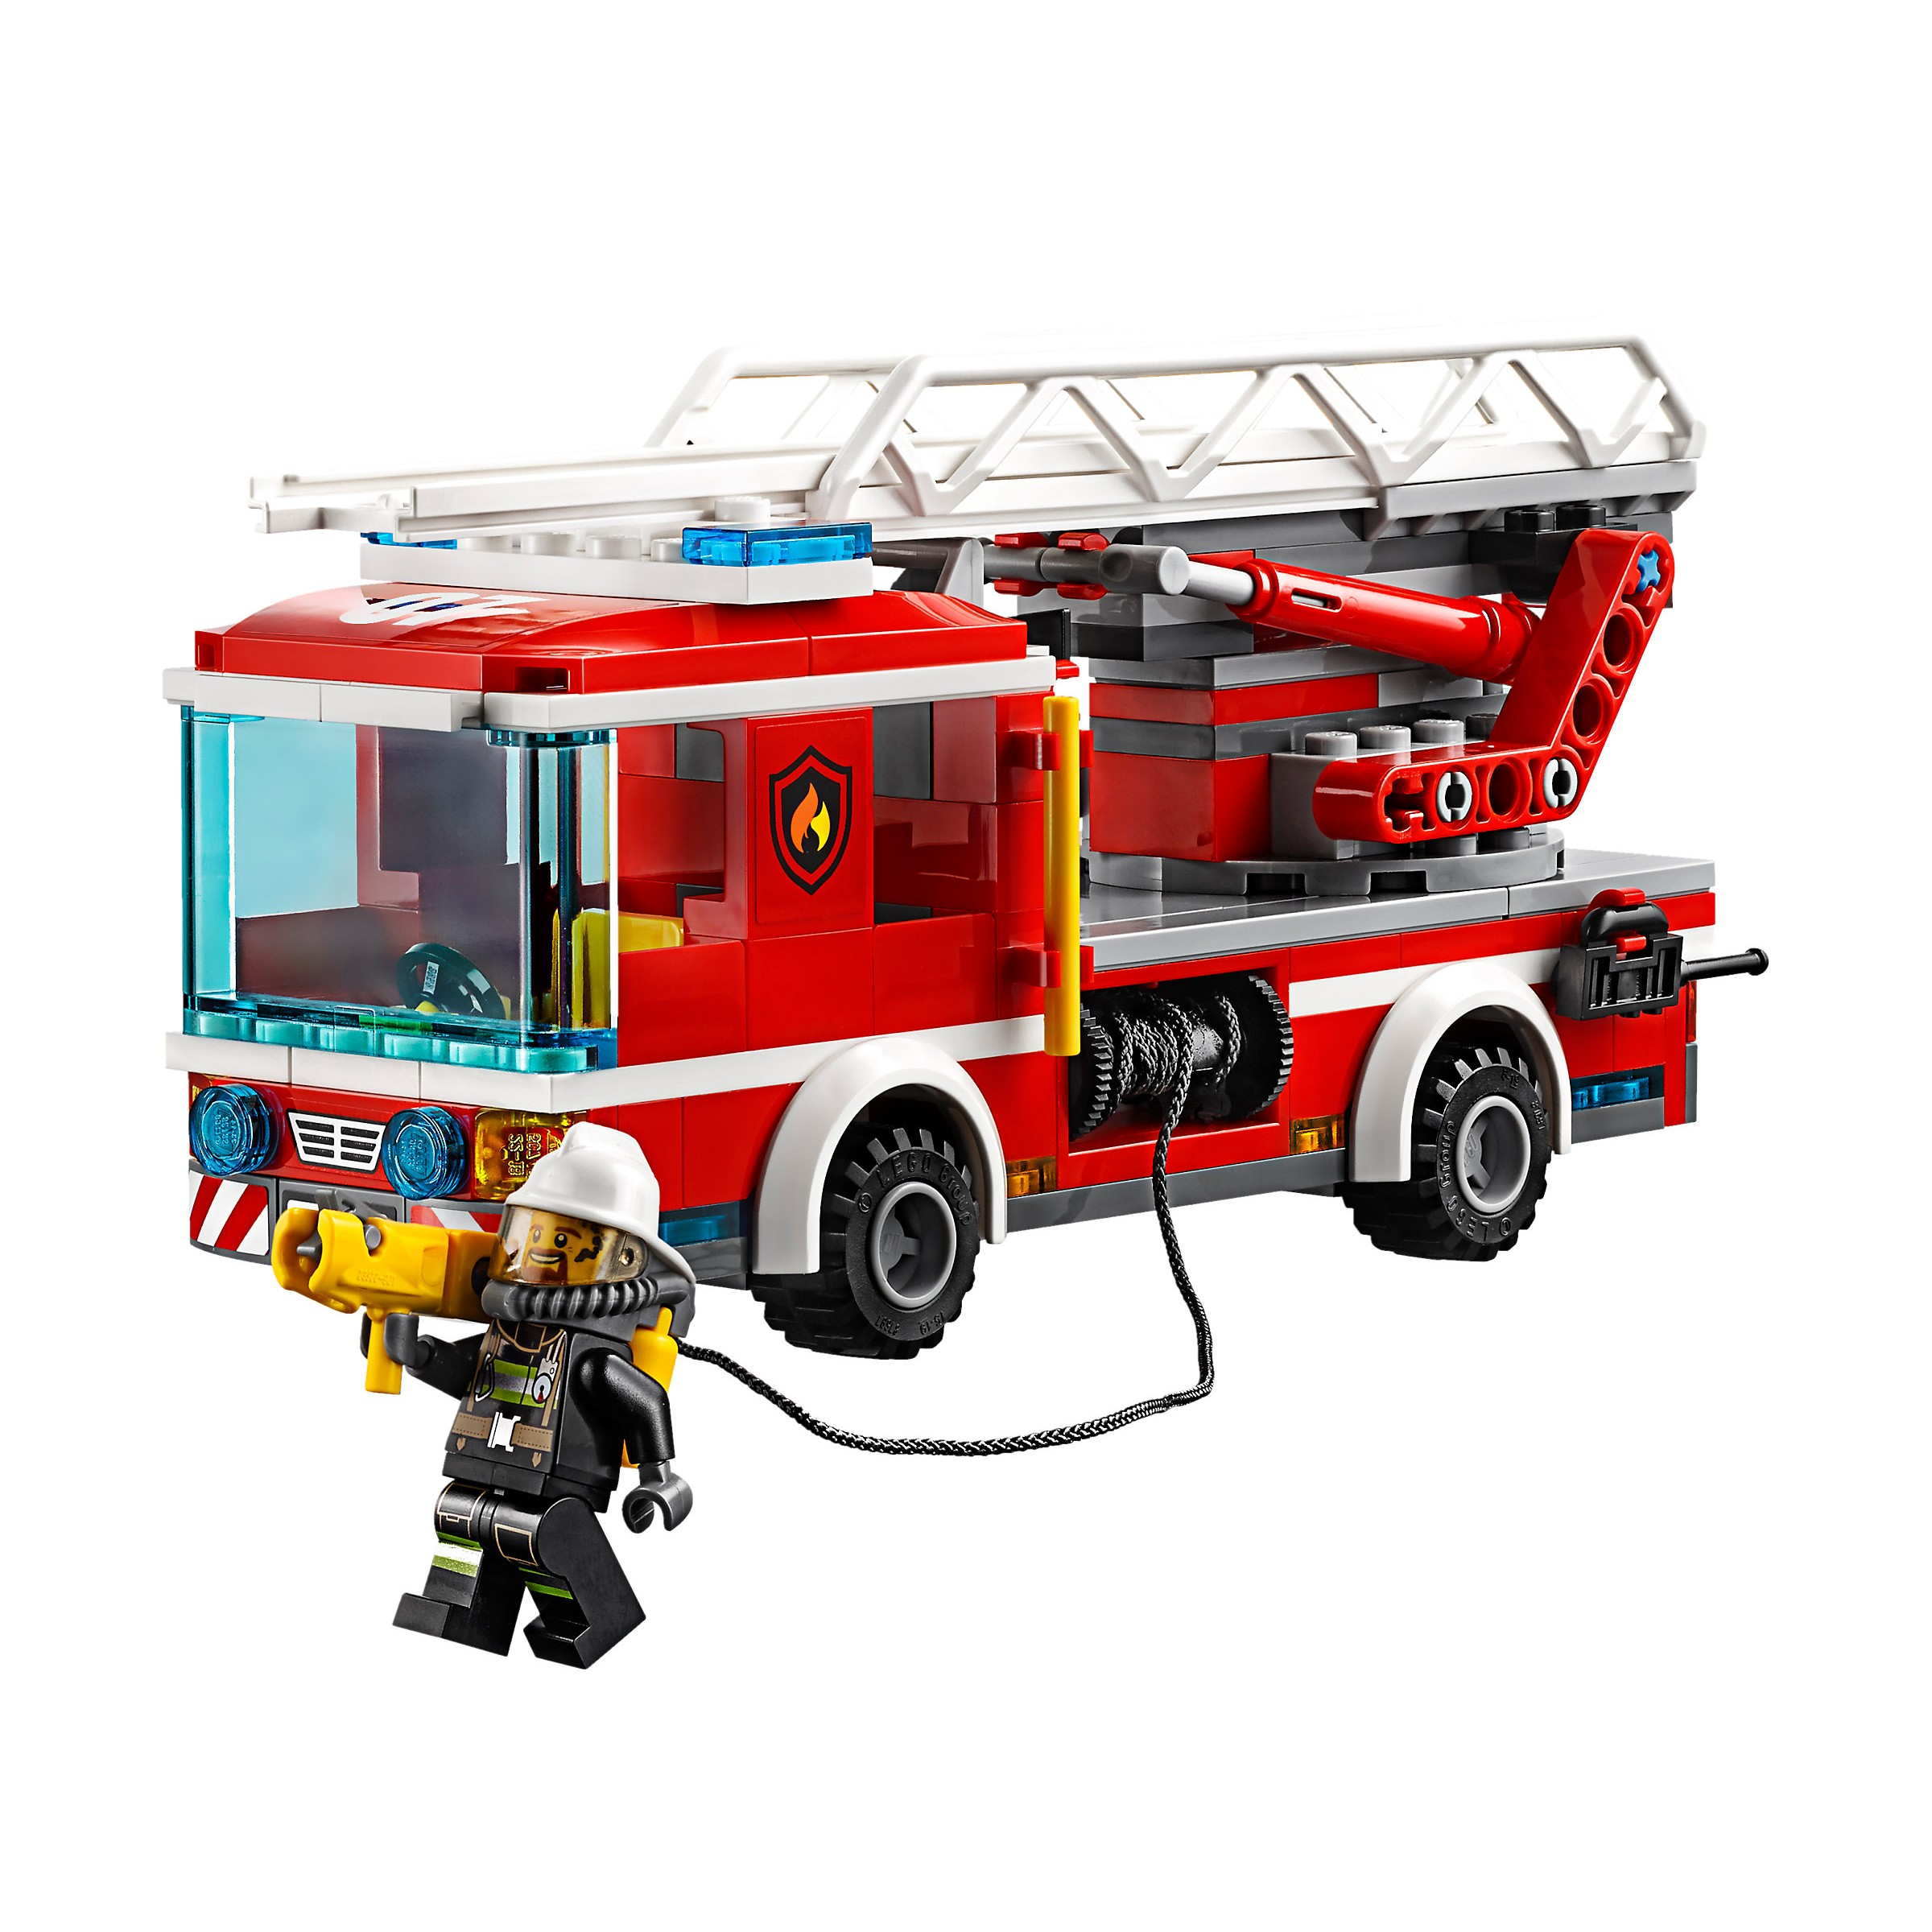 Lego 60107 City Fire Ladder Truck At Hobby Warehouse